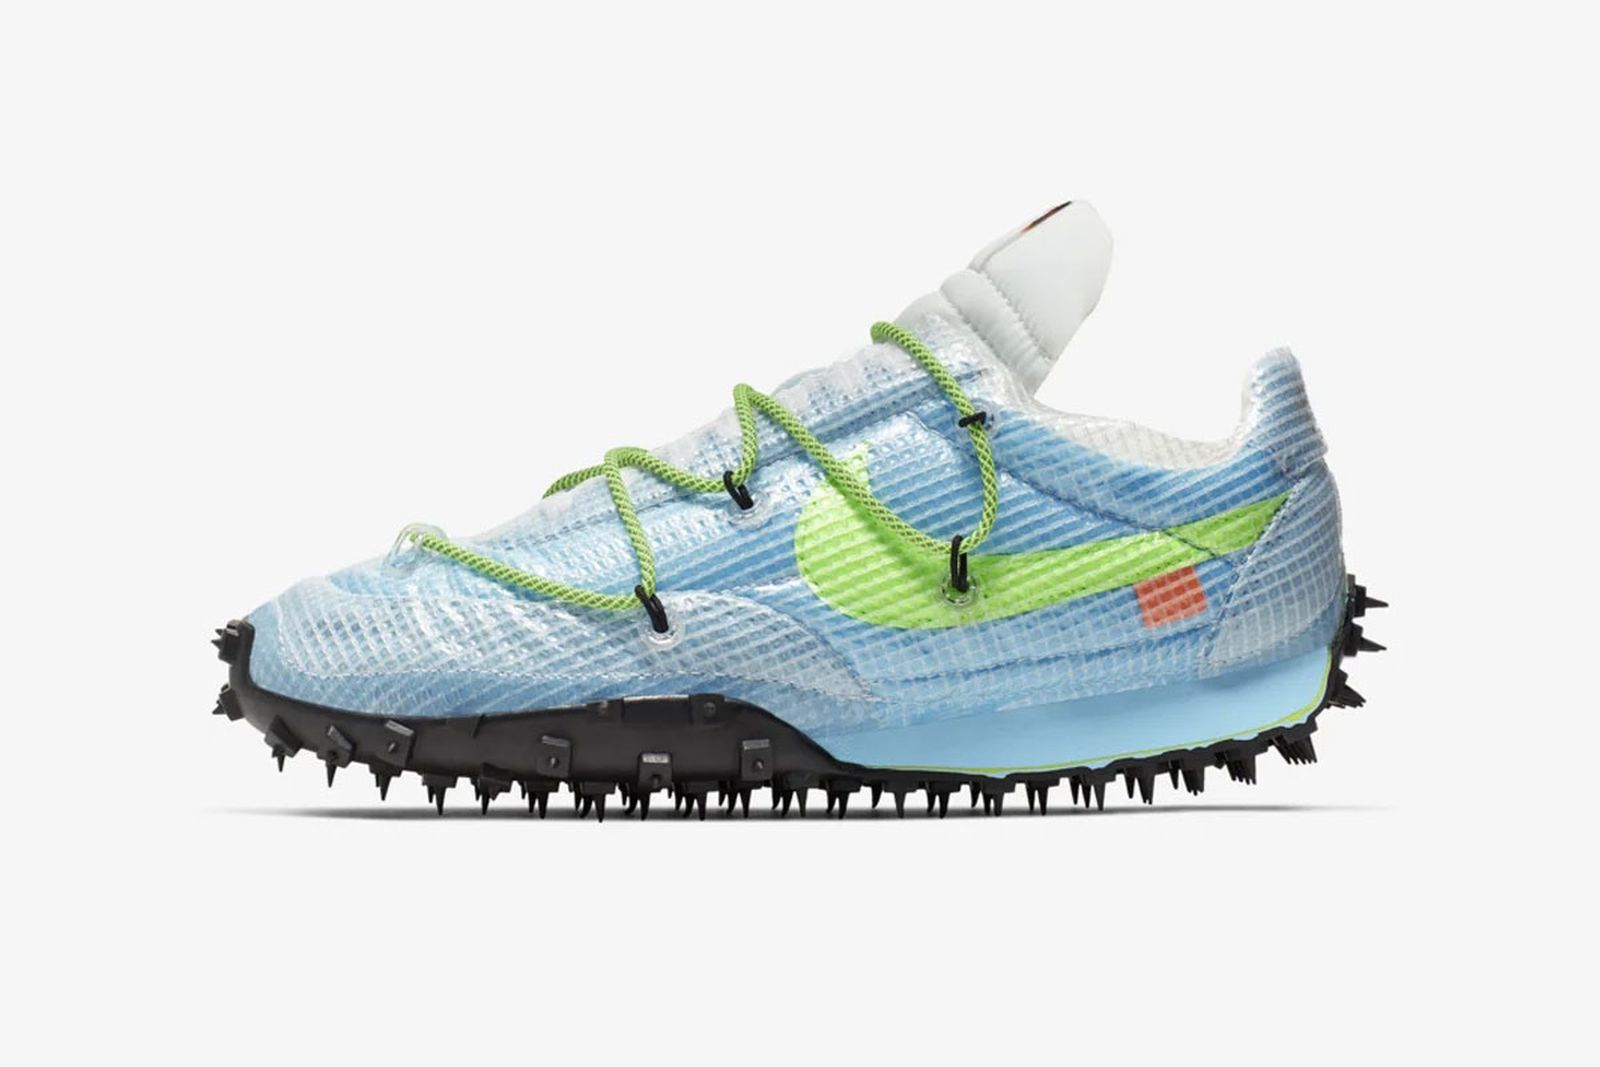 off-white-nike-waffle-racer-sp-release-date-price-01